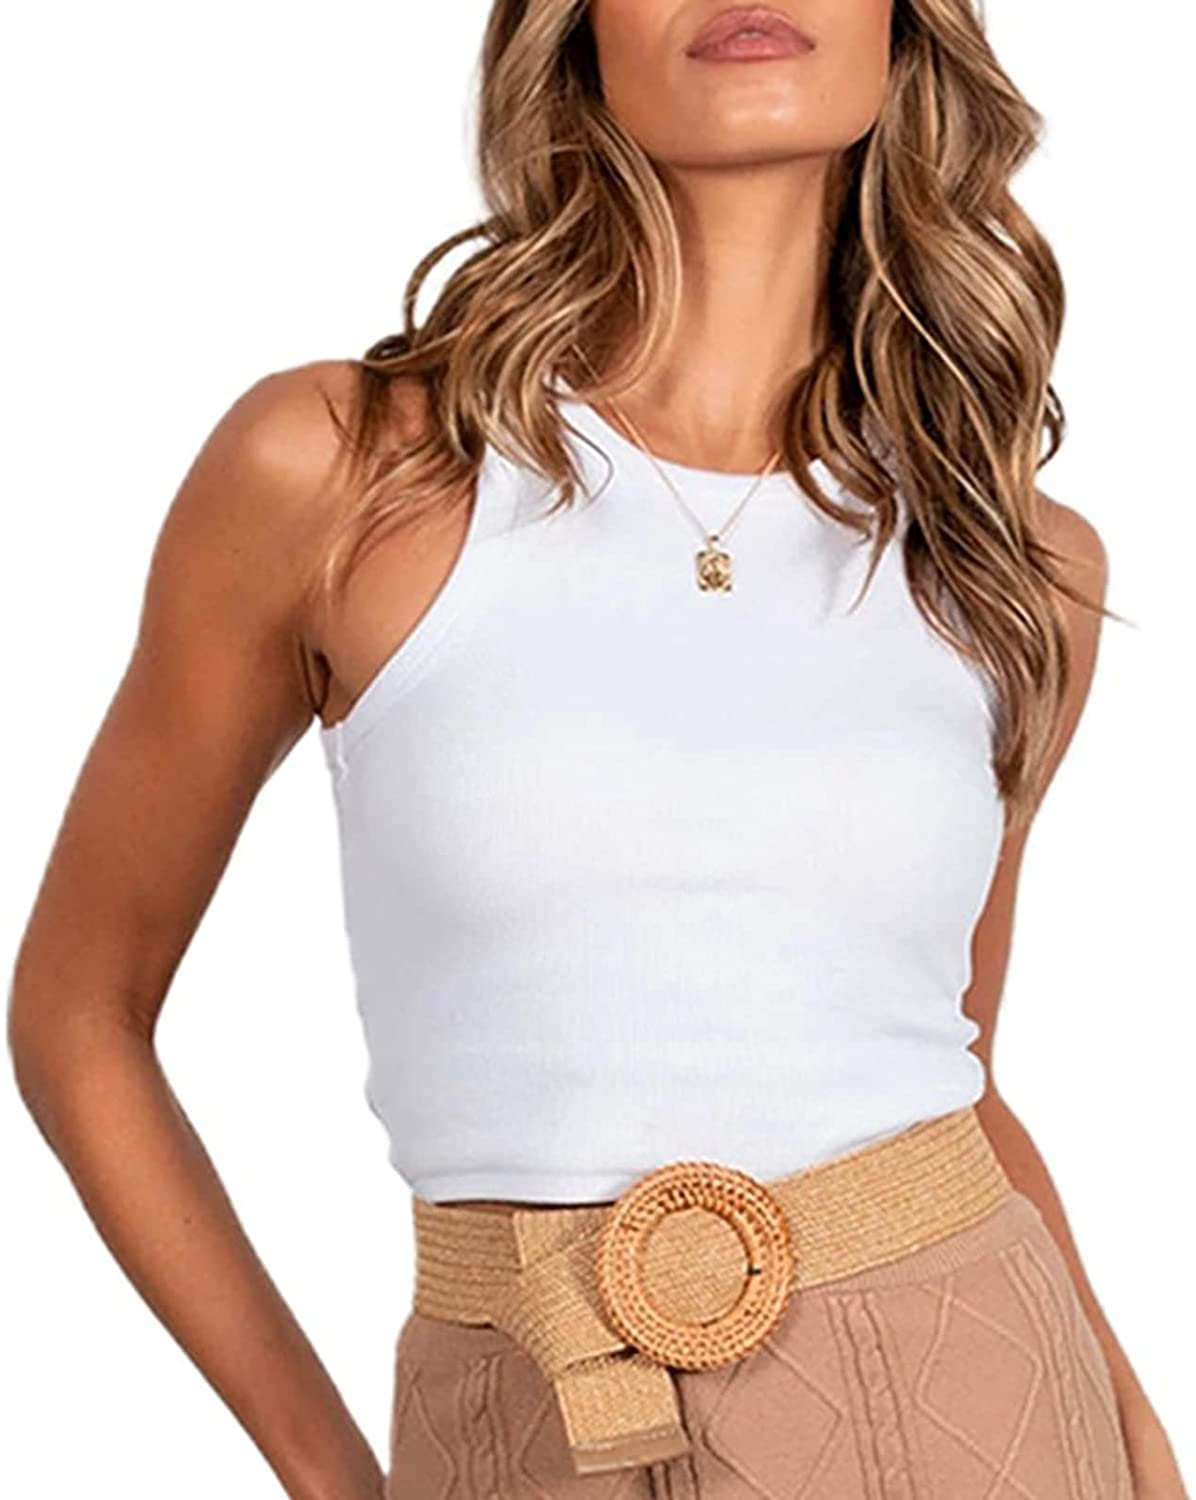 Sleeveless Racerback Tank Tops for Women Ribbed Knit Basic Stretch Cami Summer Fashion Scoop Neck Tank